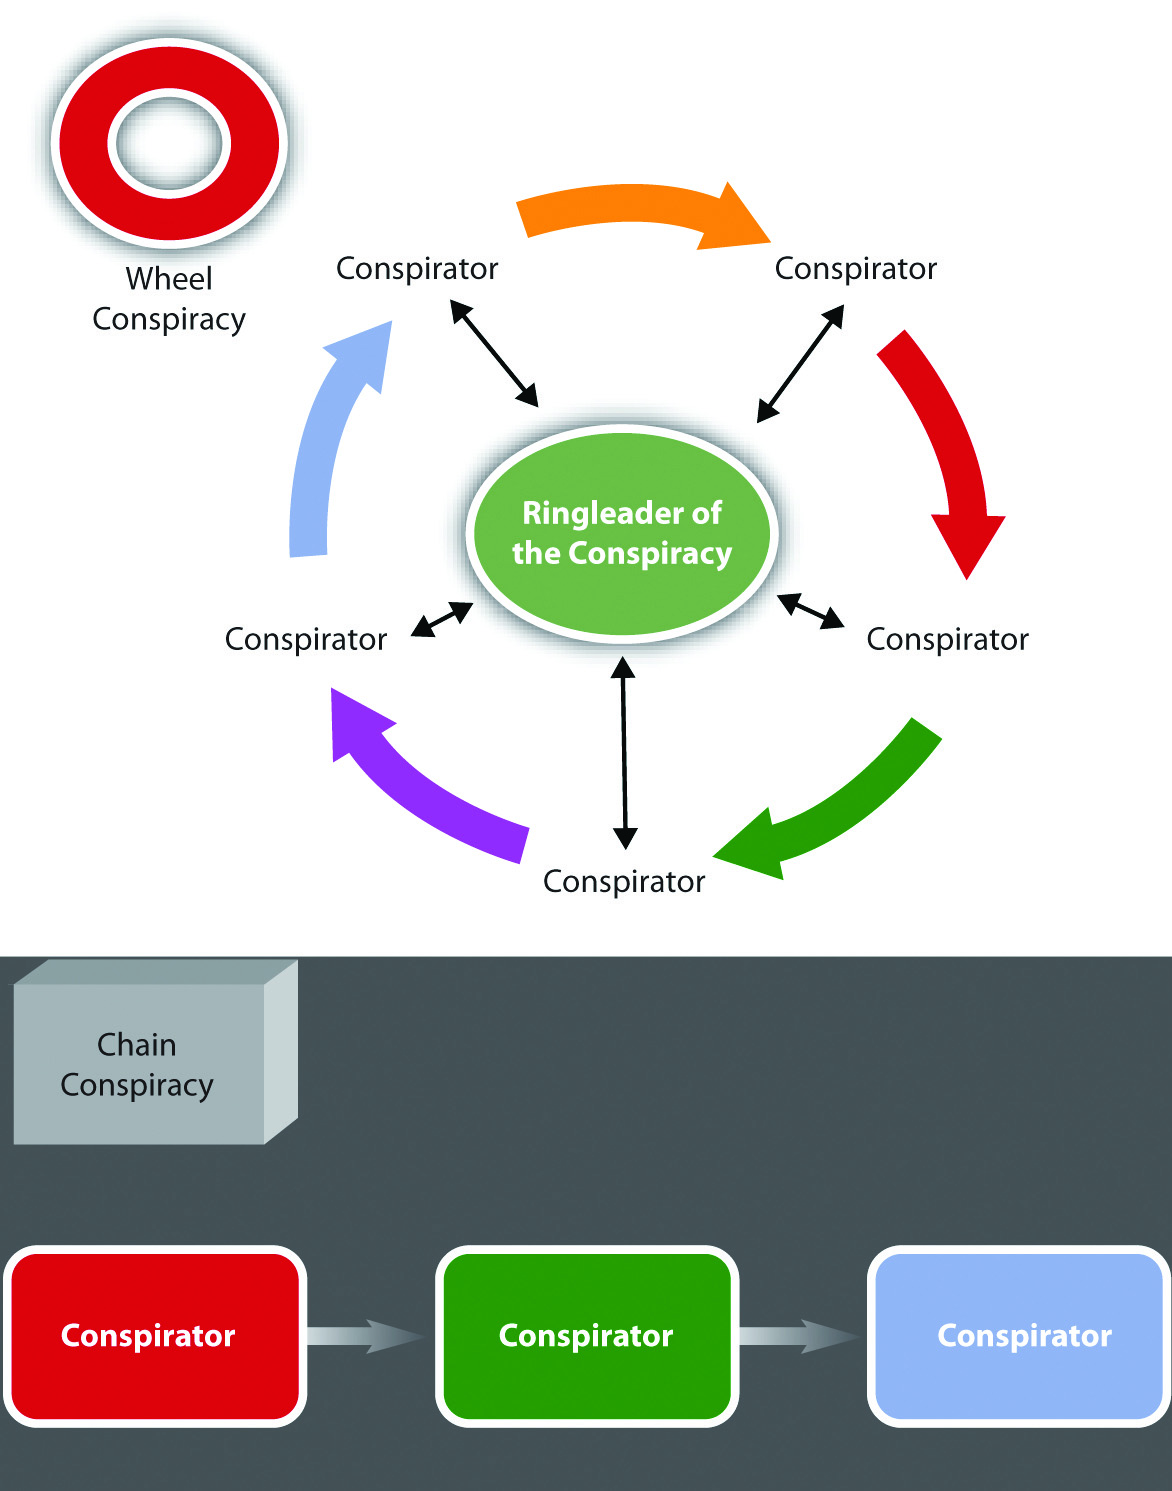 Comparison of Wheel and Chain Conspiracies